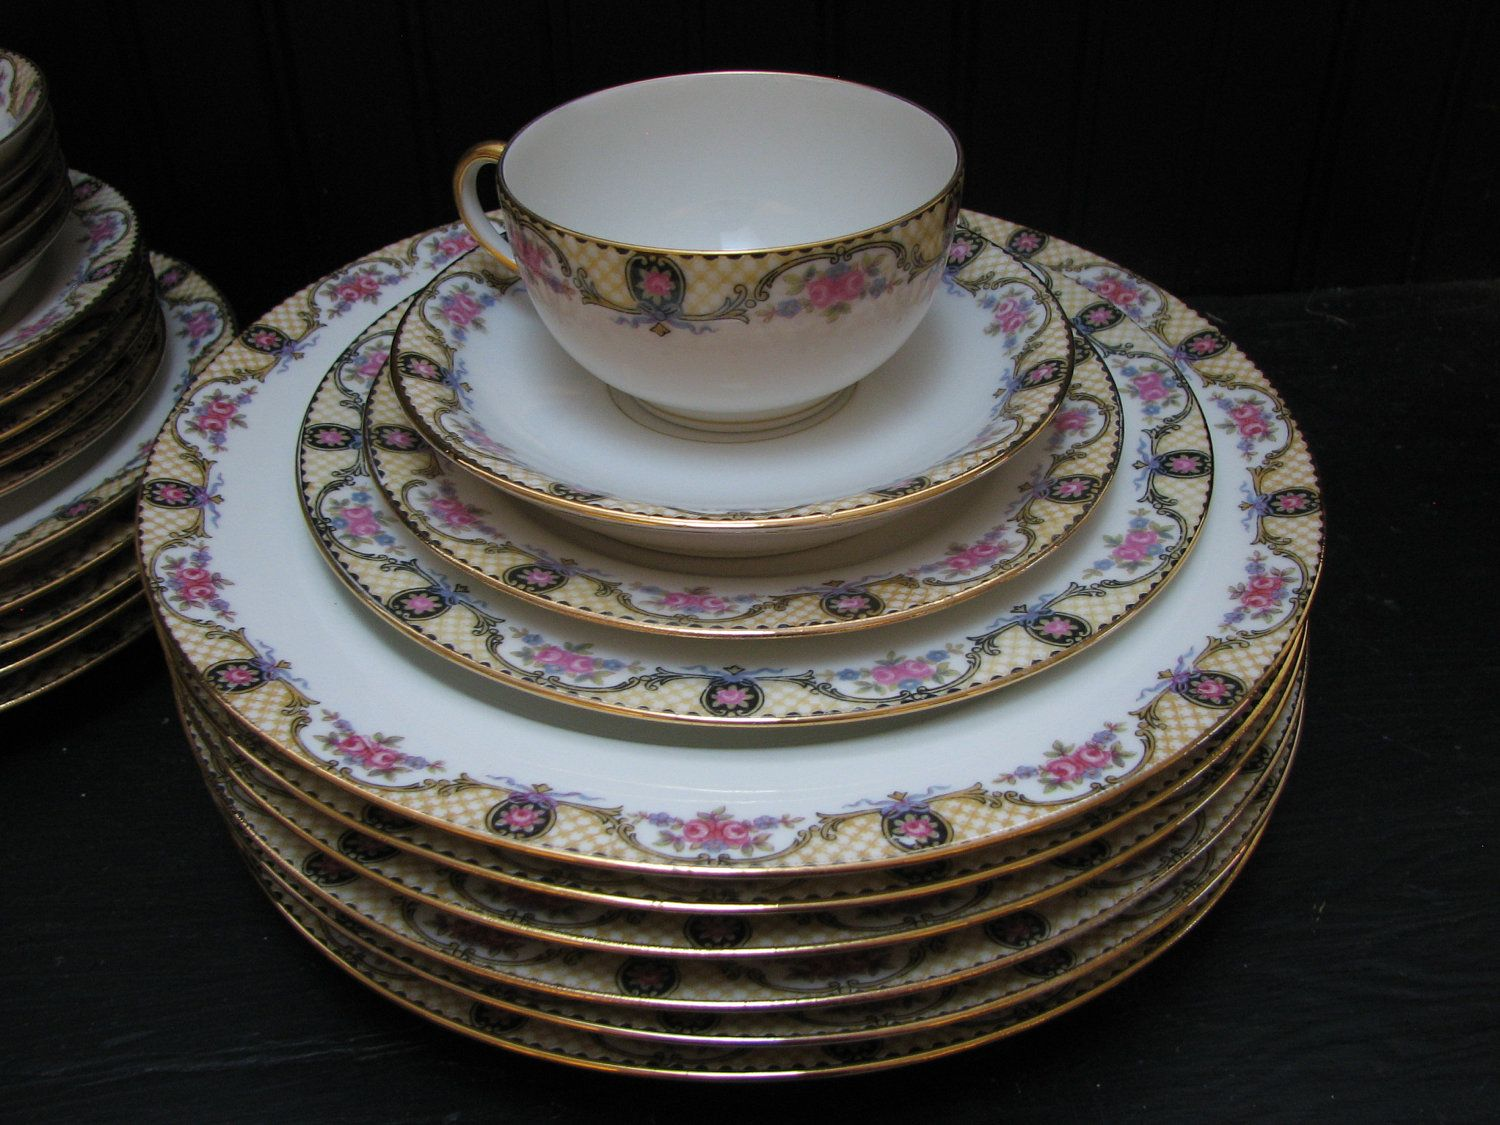 antique french limoges jean pouyat limoges france porcelain china dinnerware limoges china and. Black Bedroom Furniture Sets. Home Design Ideas